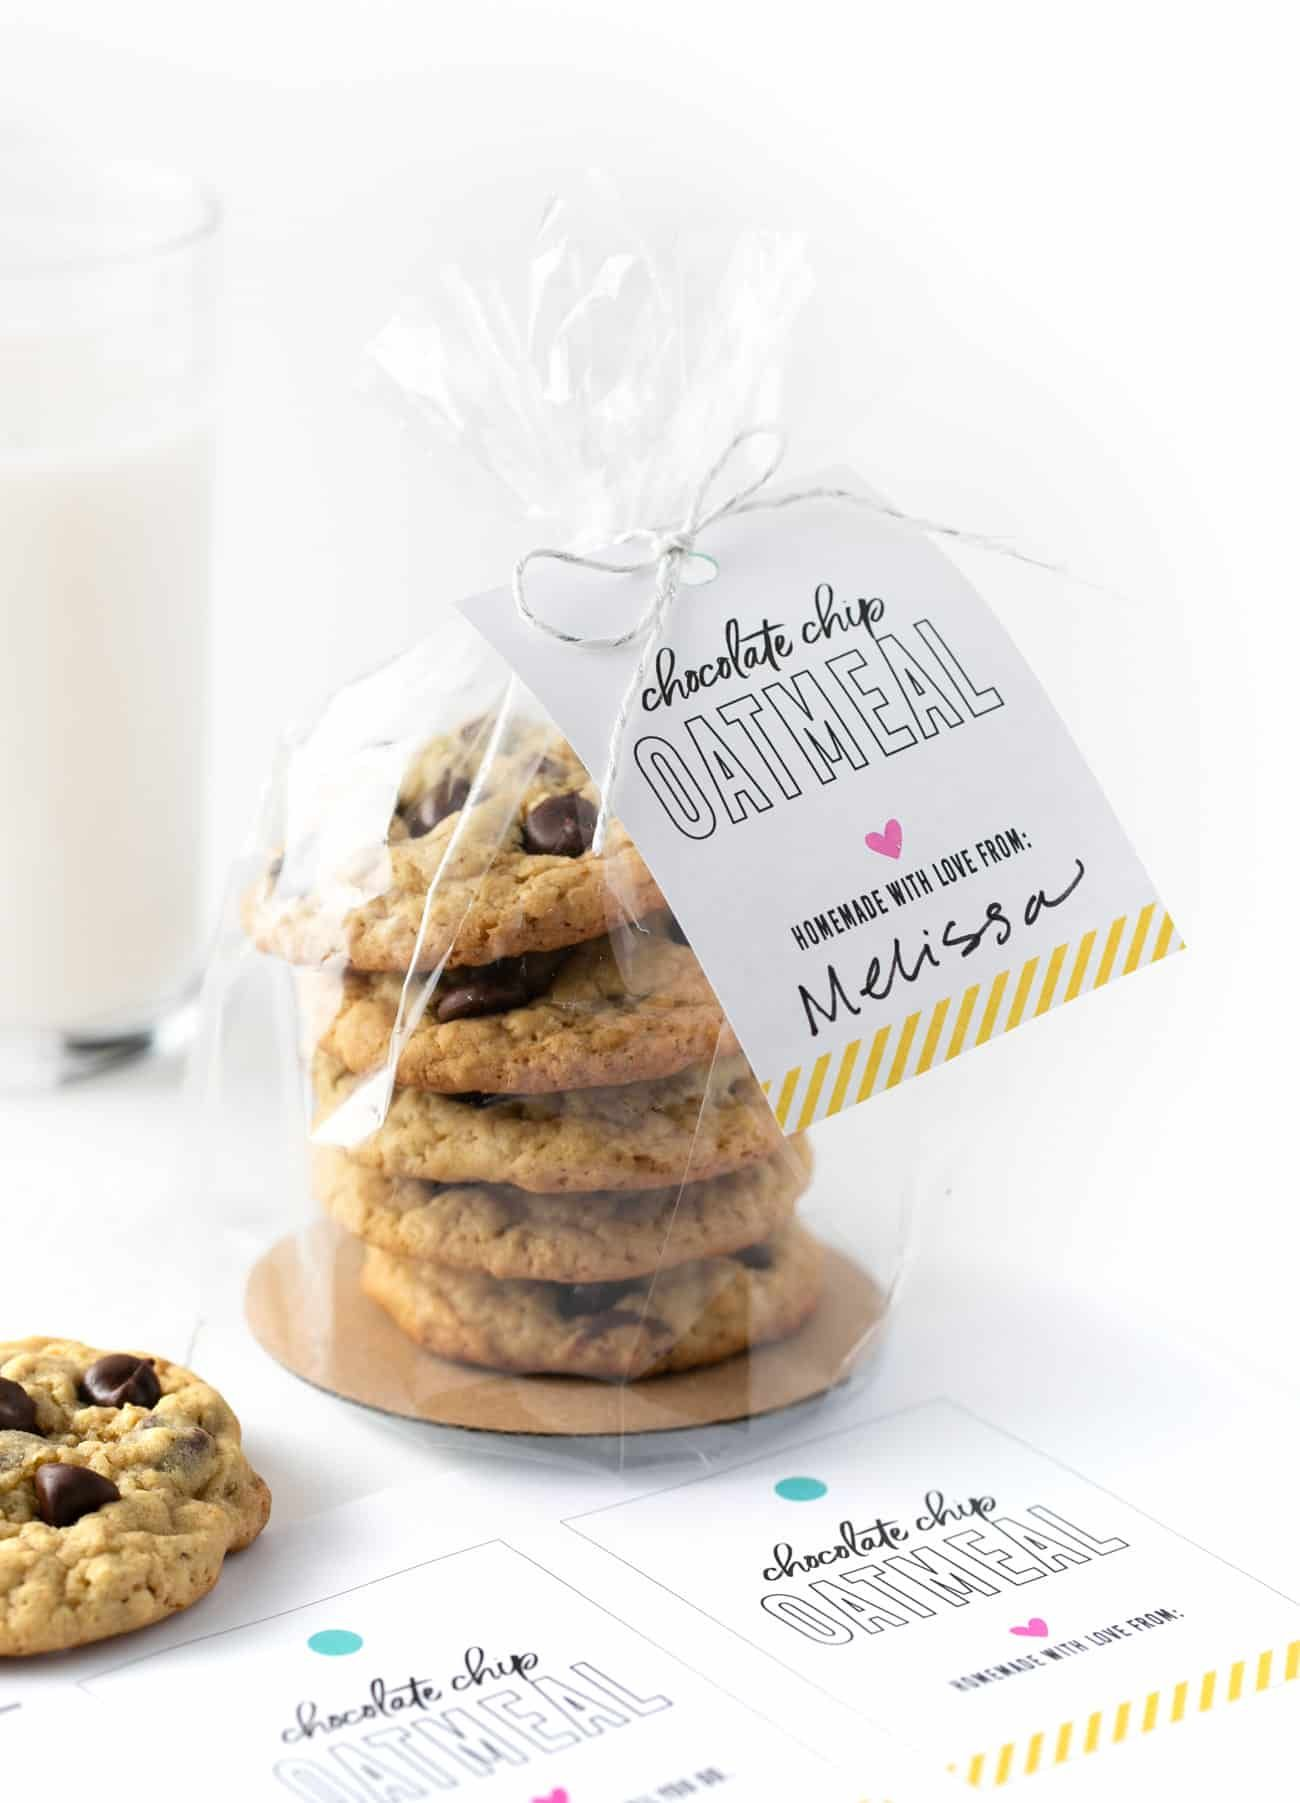 Plastic bag of chocolate chip oatmeal cookies with ... Oatmeal Chocolate Chip Cookies Packaging